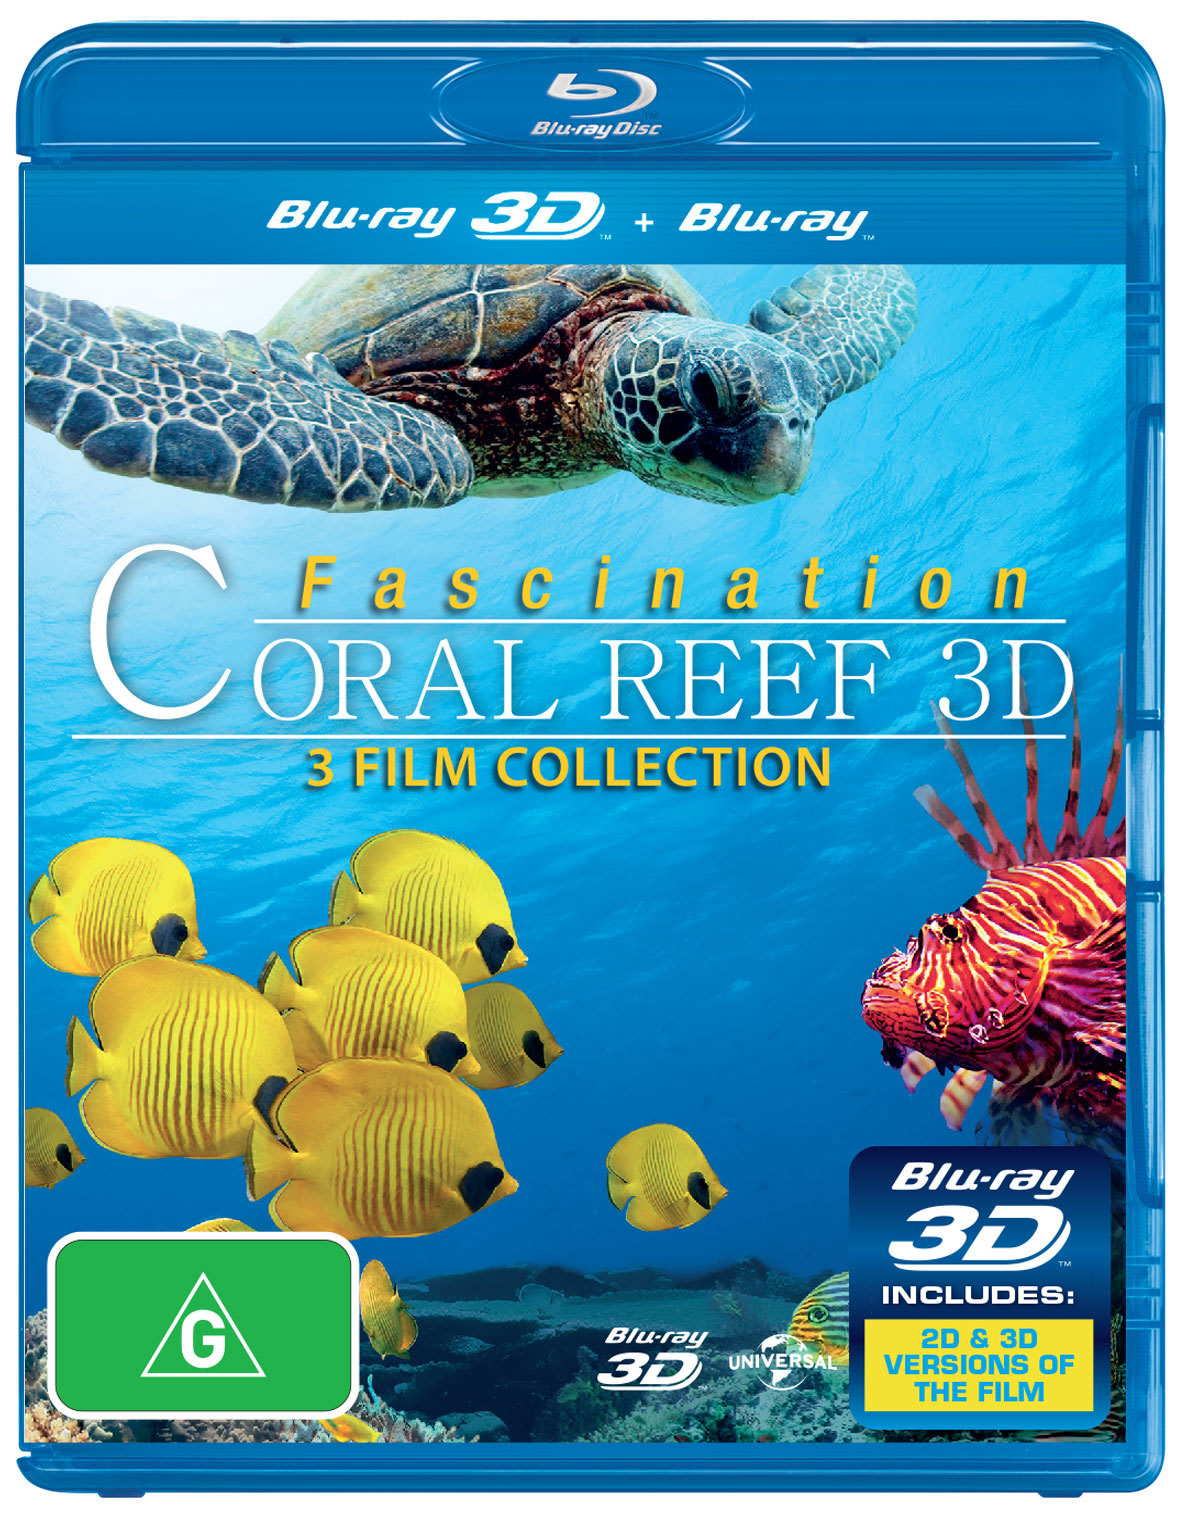 Fascination Coral Reef 3D (3D Edition) [Blu-ray]